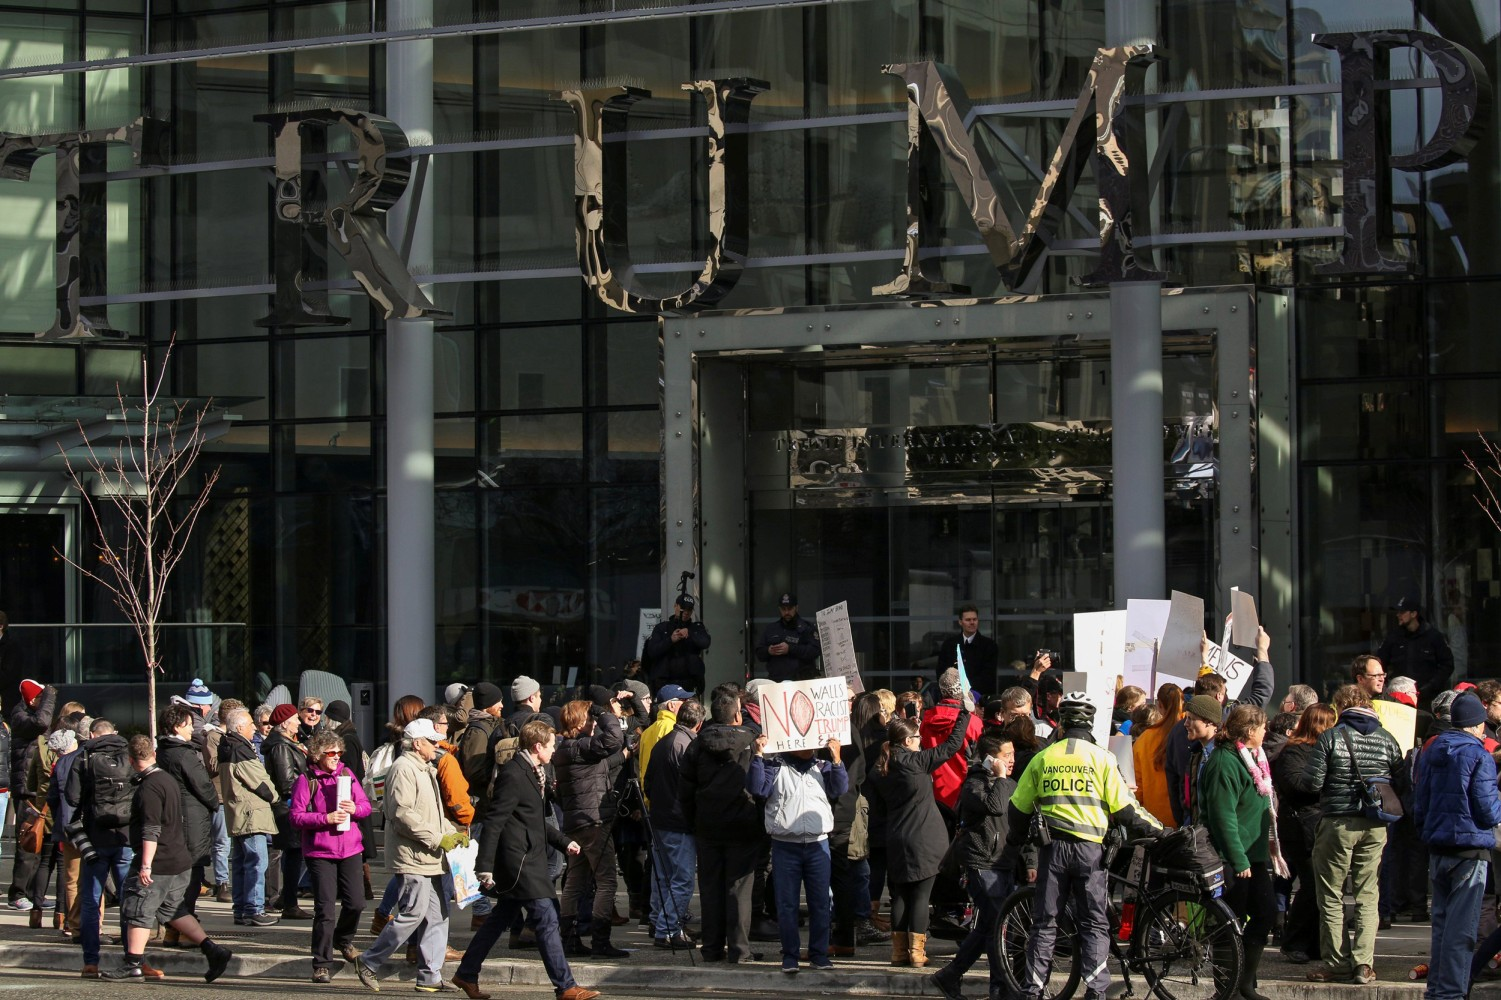 Amid protests, Trump's sons open hotel in Vancouver